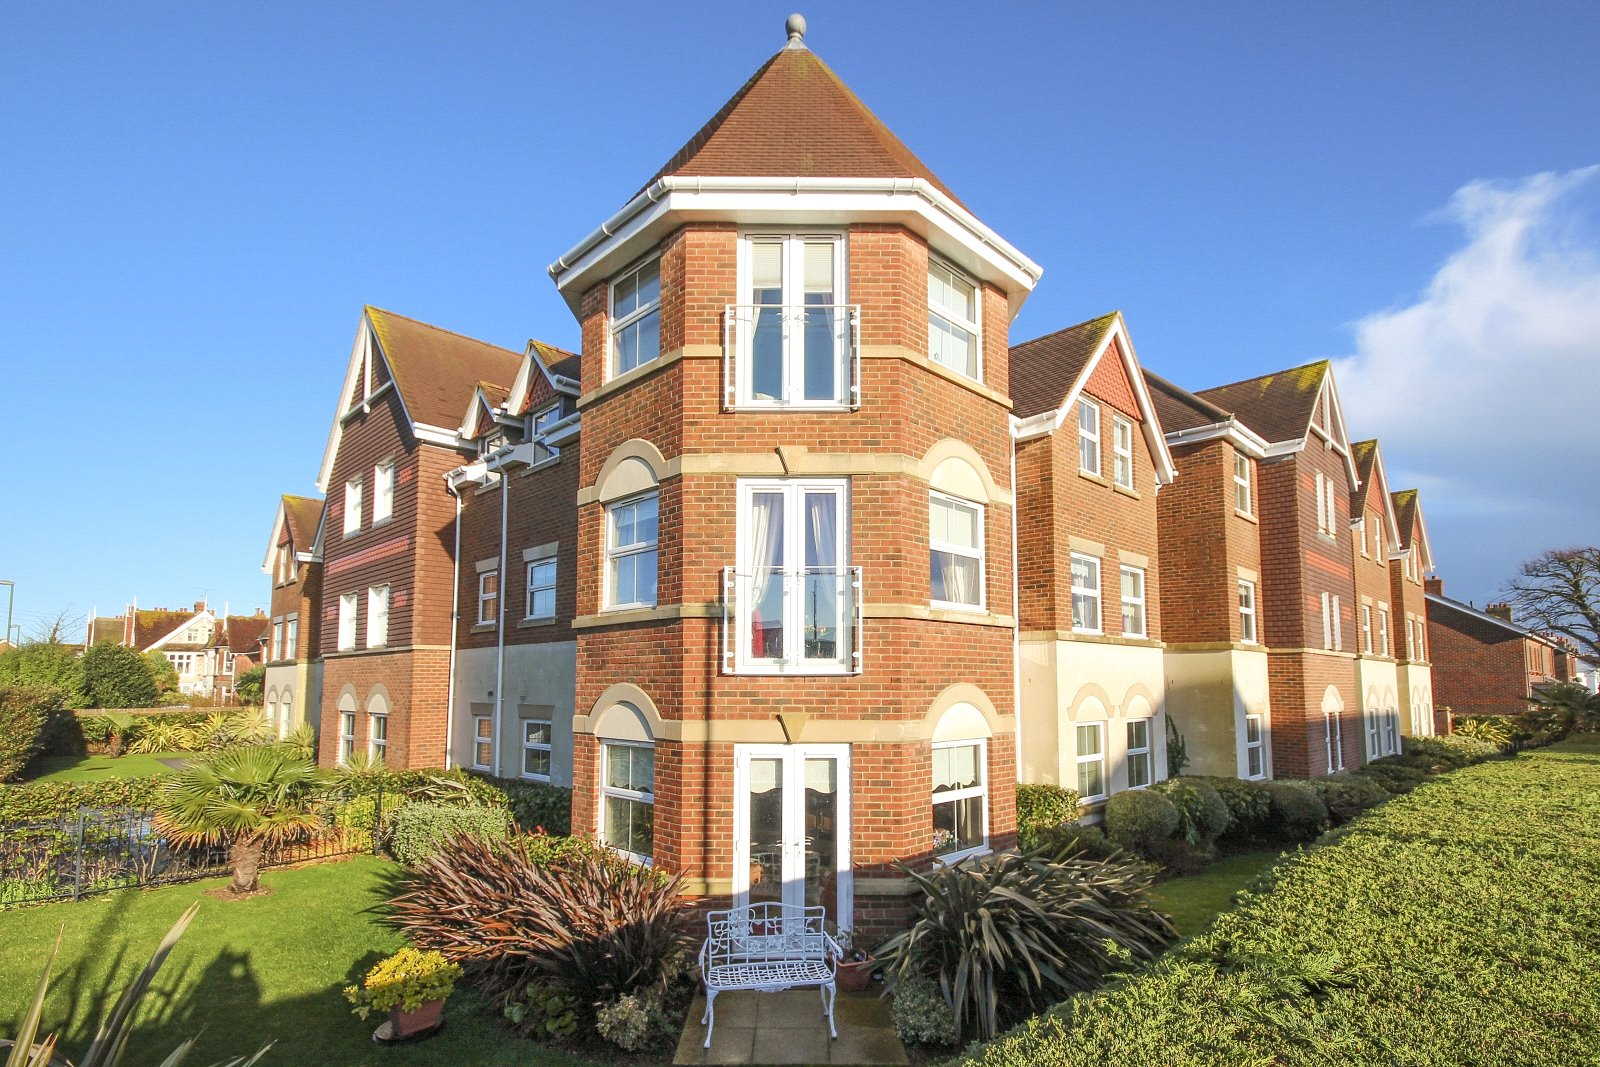 2 bed apartment for sale in Tamarisk, 1 Manor Road, East Preston, BN16